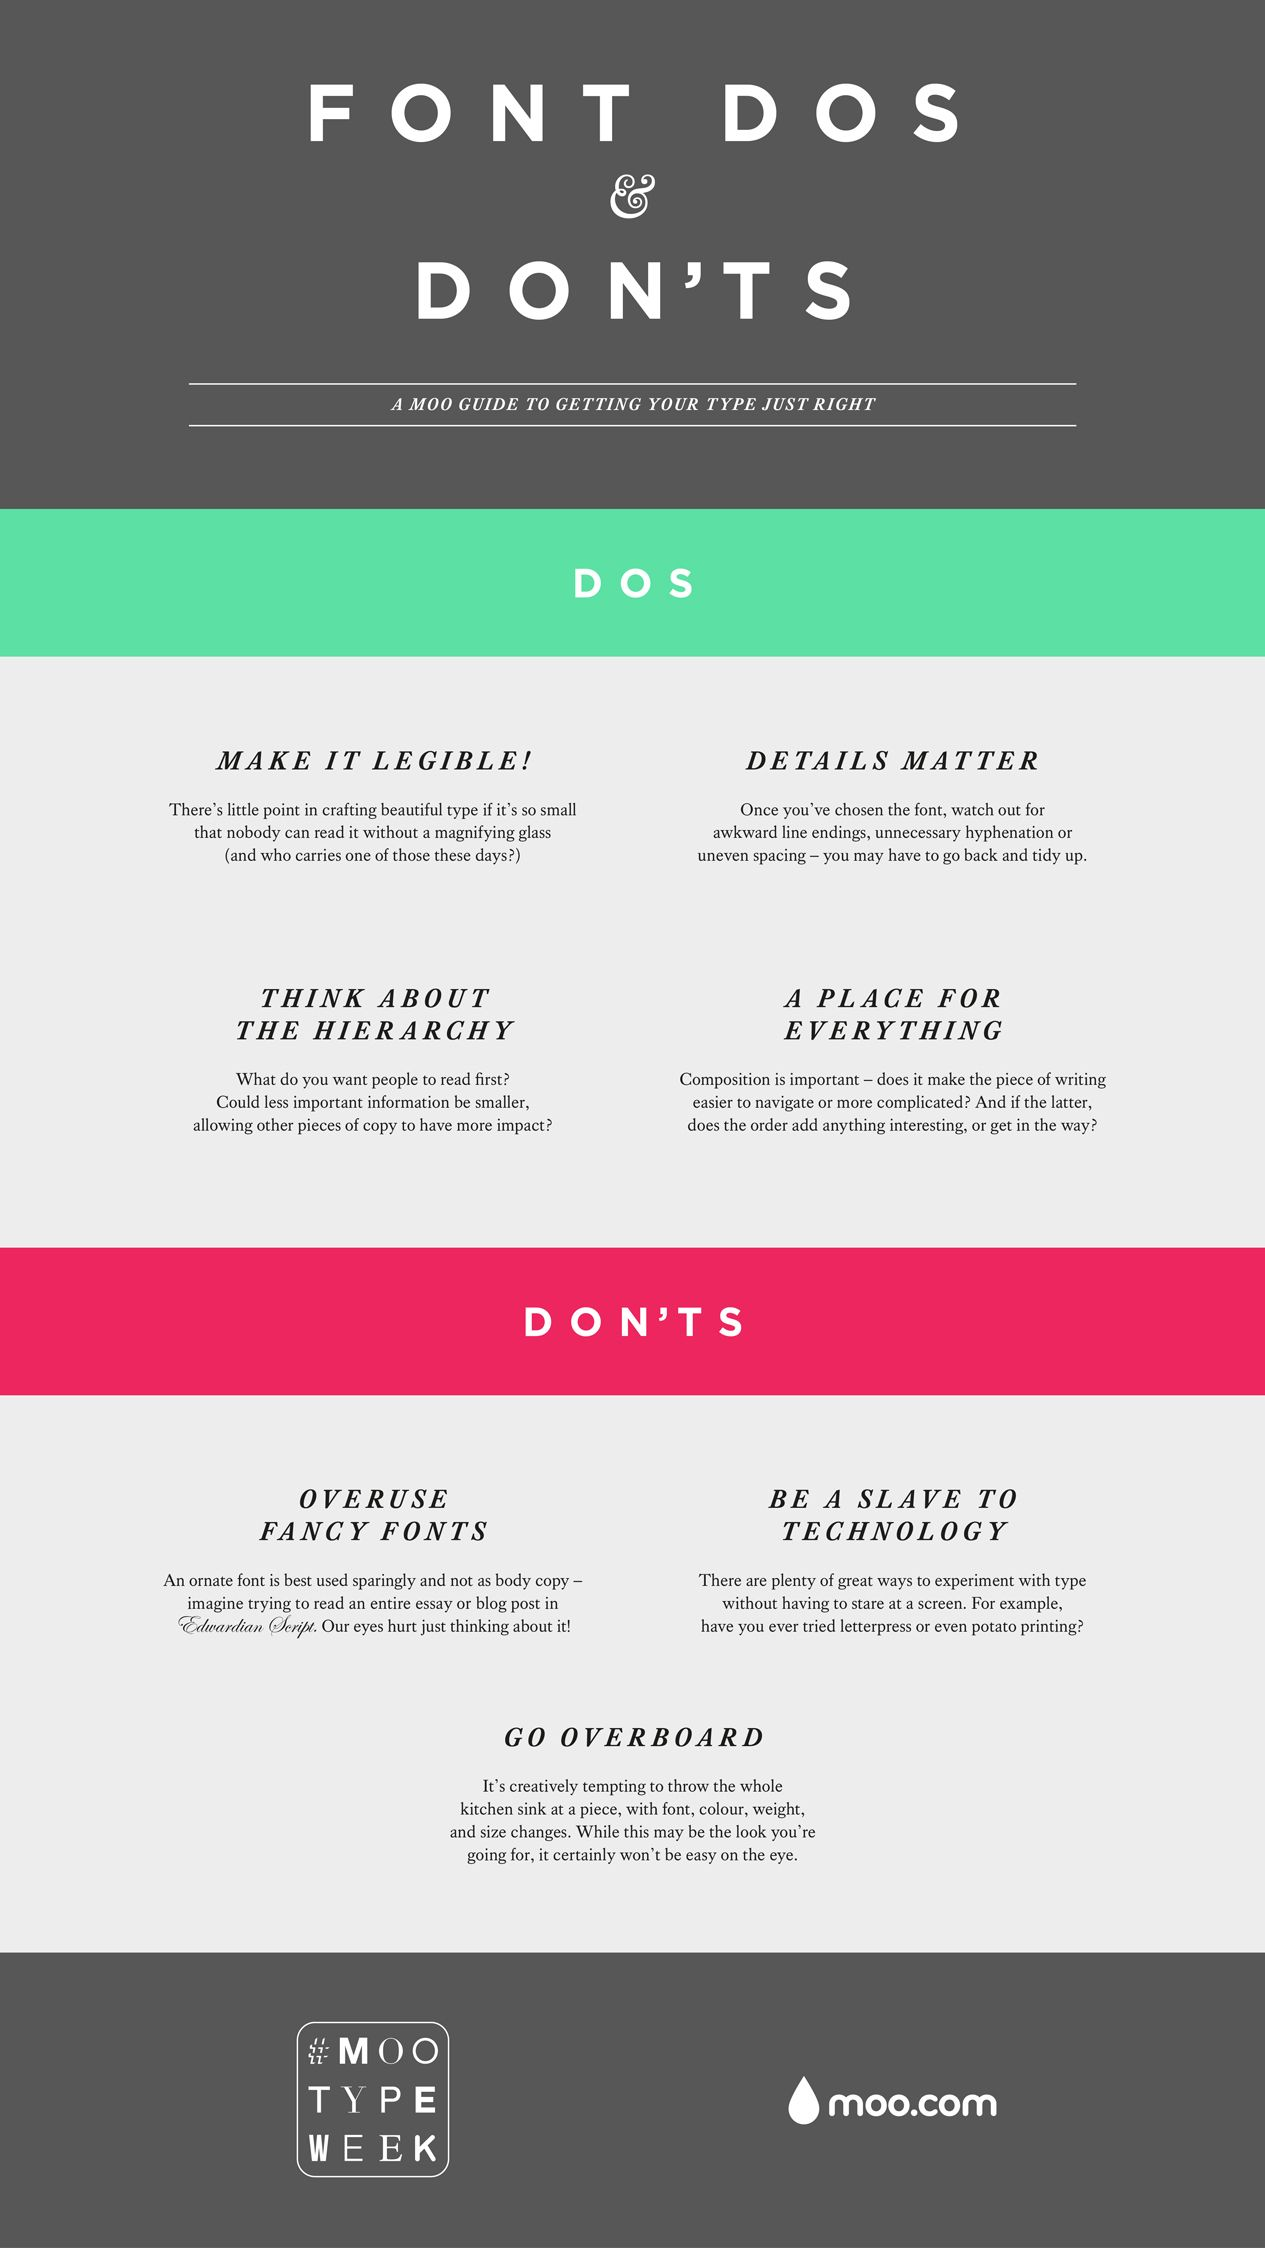 MOO\'s Font Dos & Don\'ts | Graphic Design Love | Pinterest ...